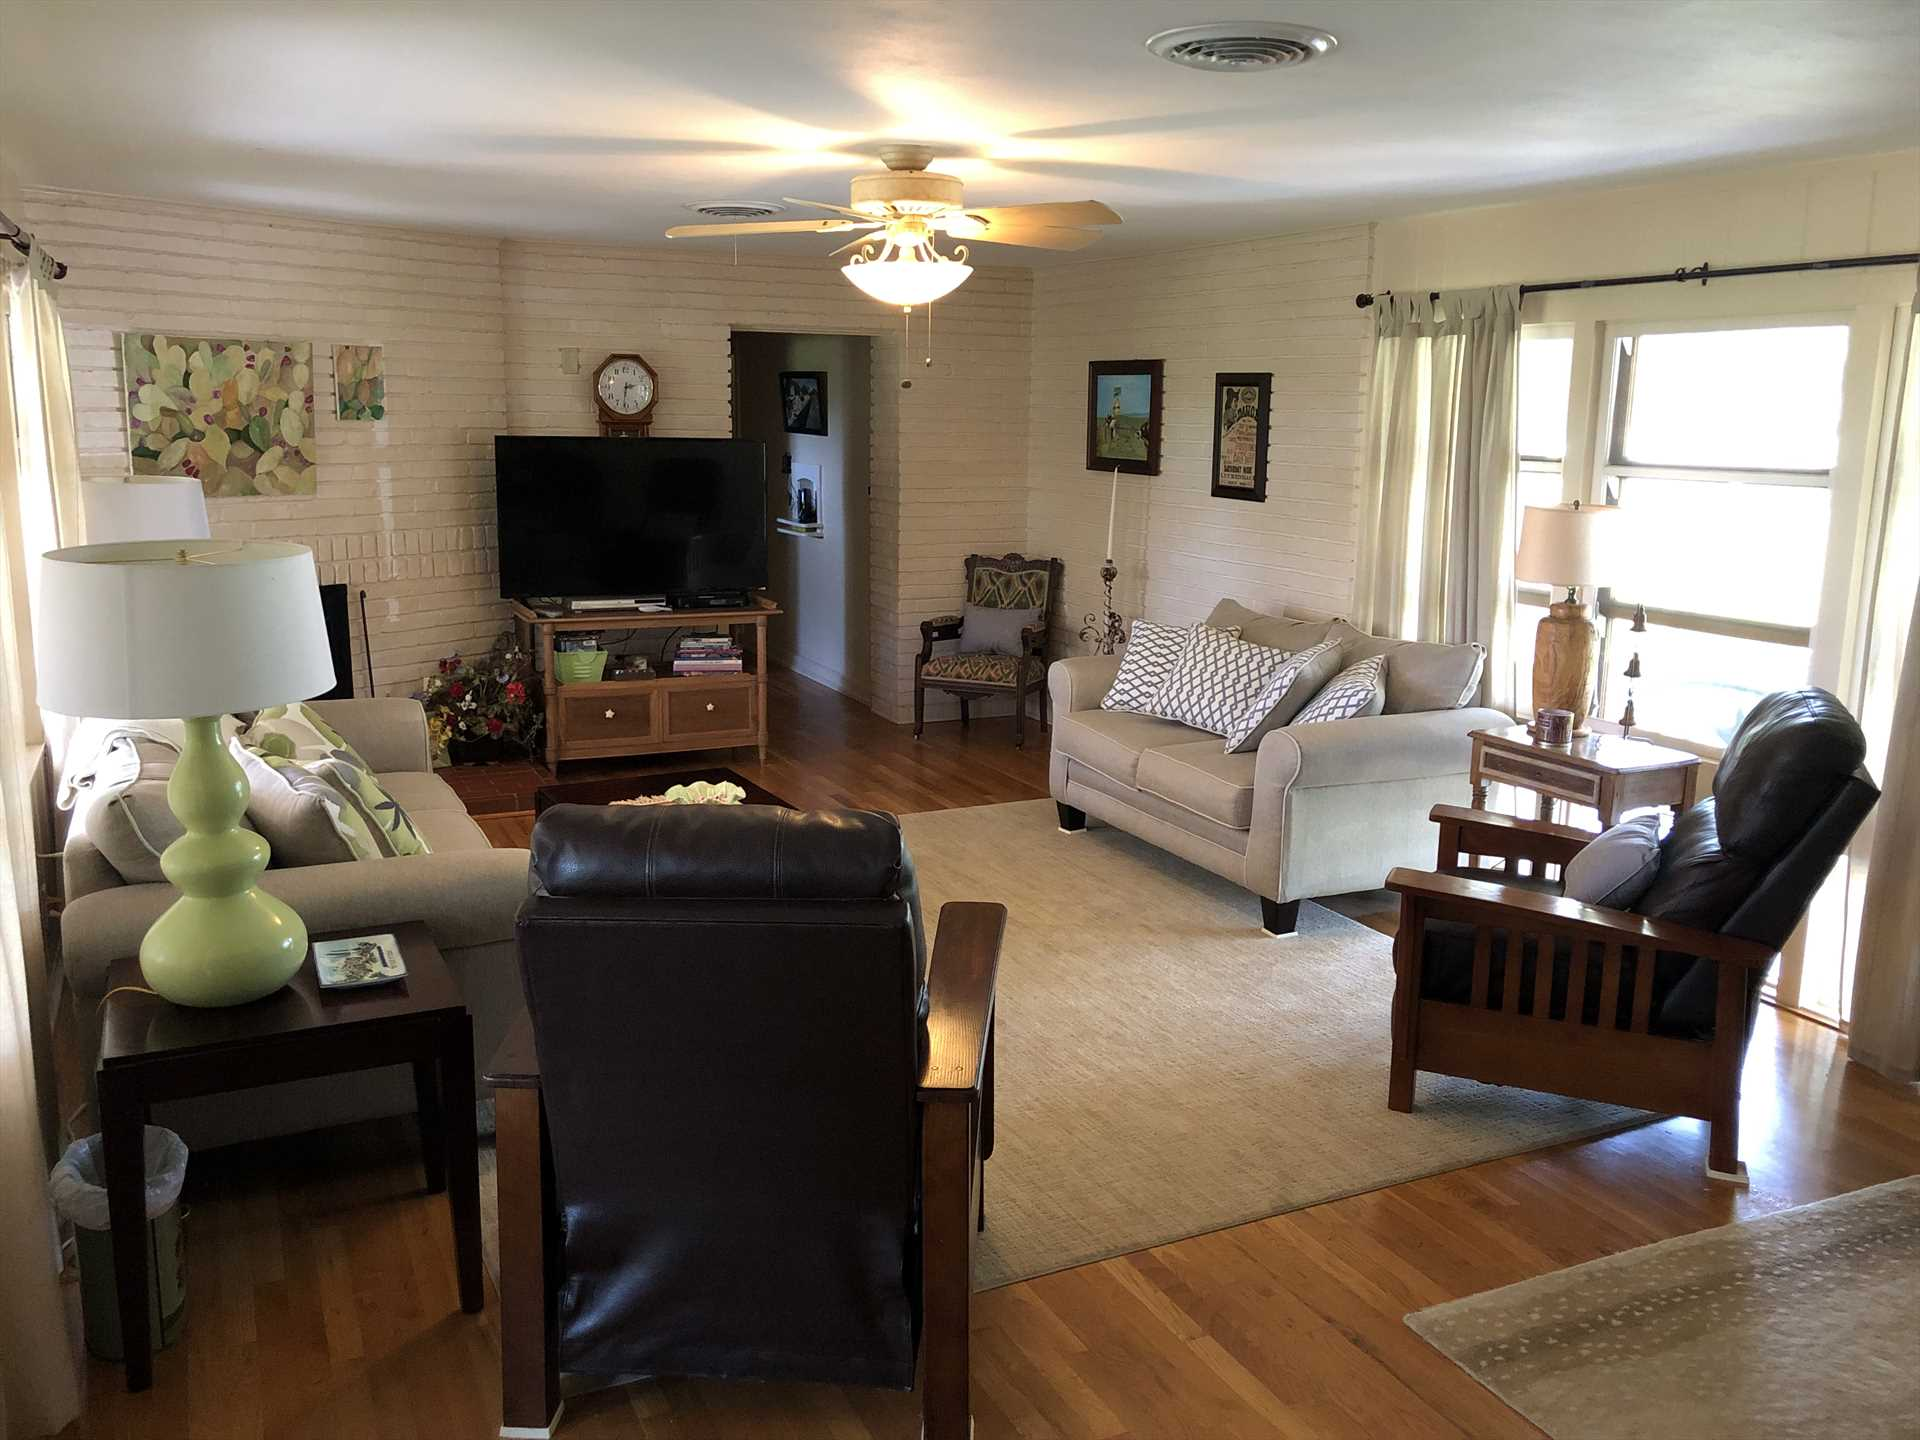 Central air and heat, along with adjustable ceiling fans, make this beautifully furnished rental a comfortable Hill Country escape year round.